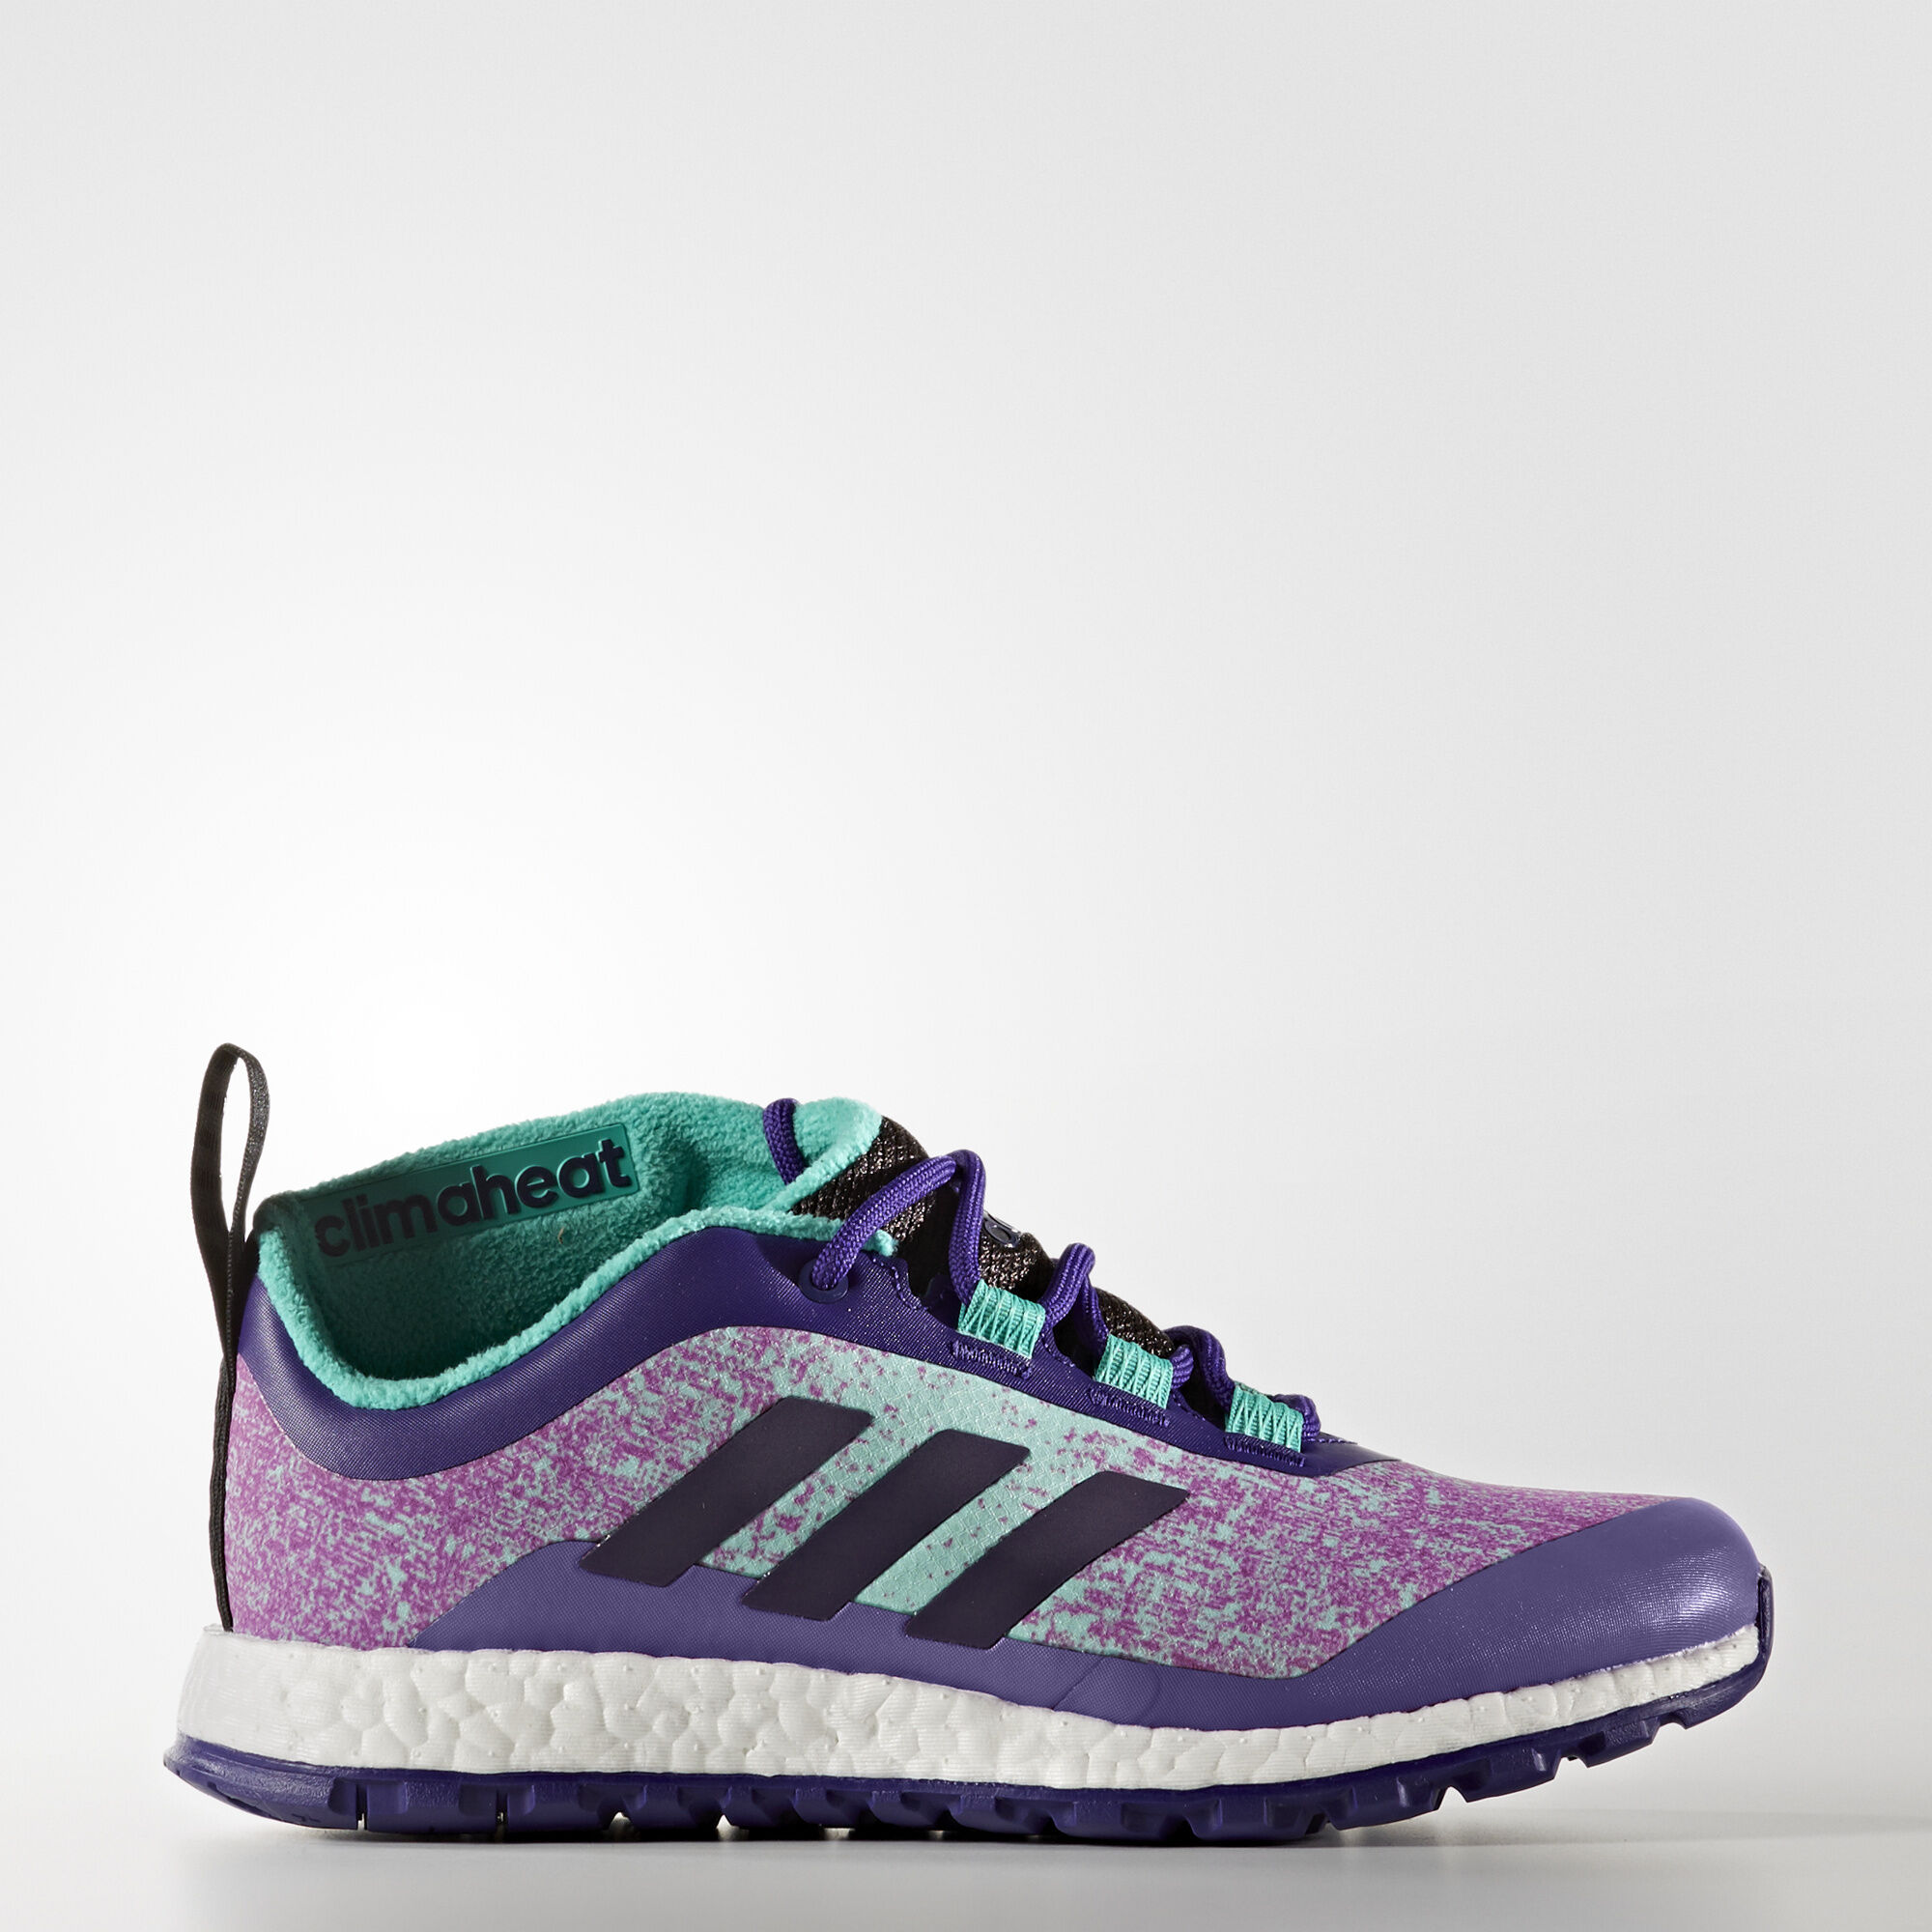 Adidas Shoes For Girls High Tops Purple